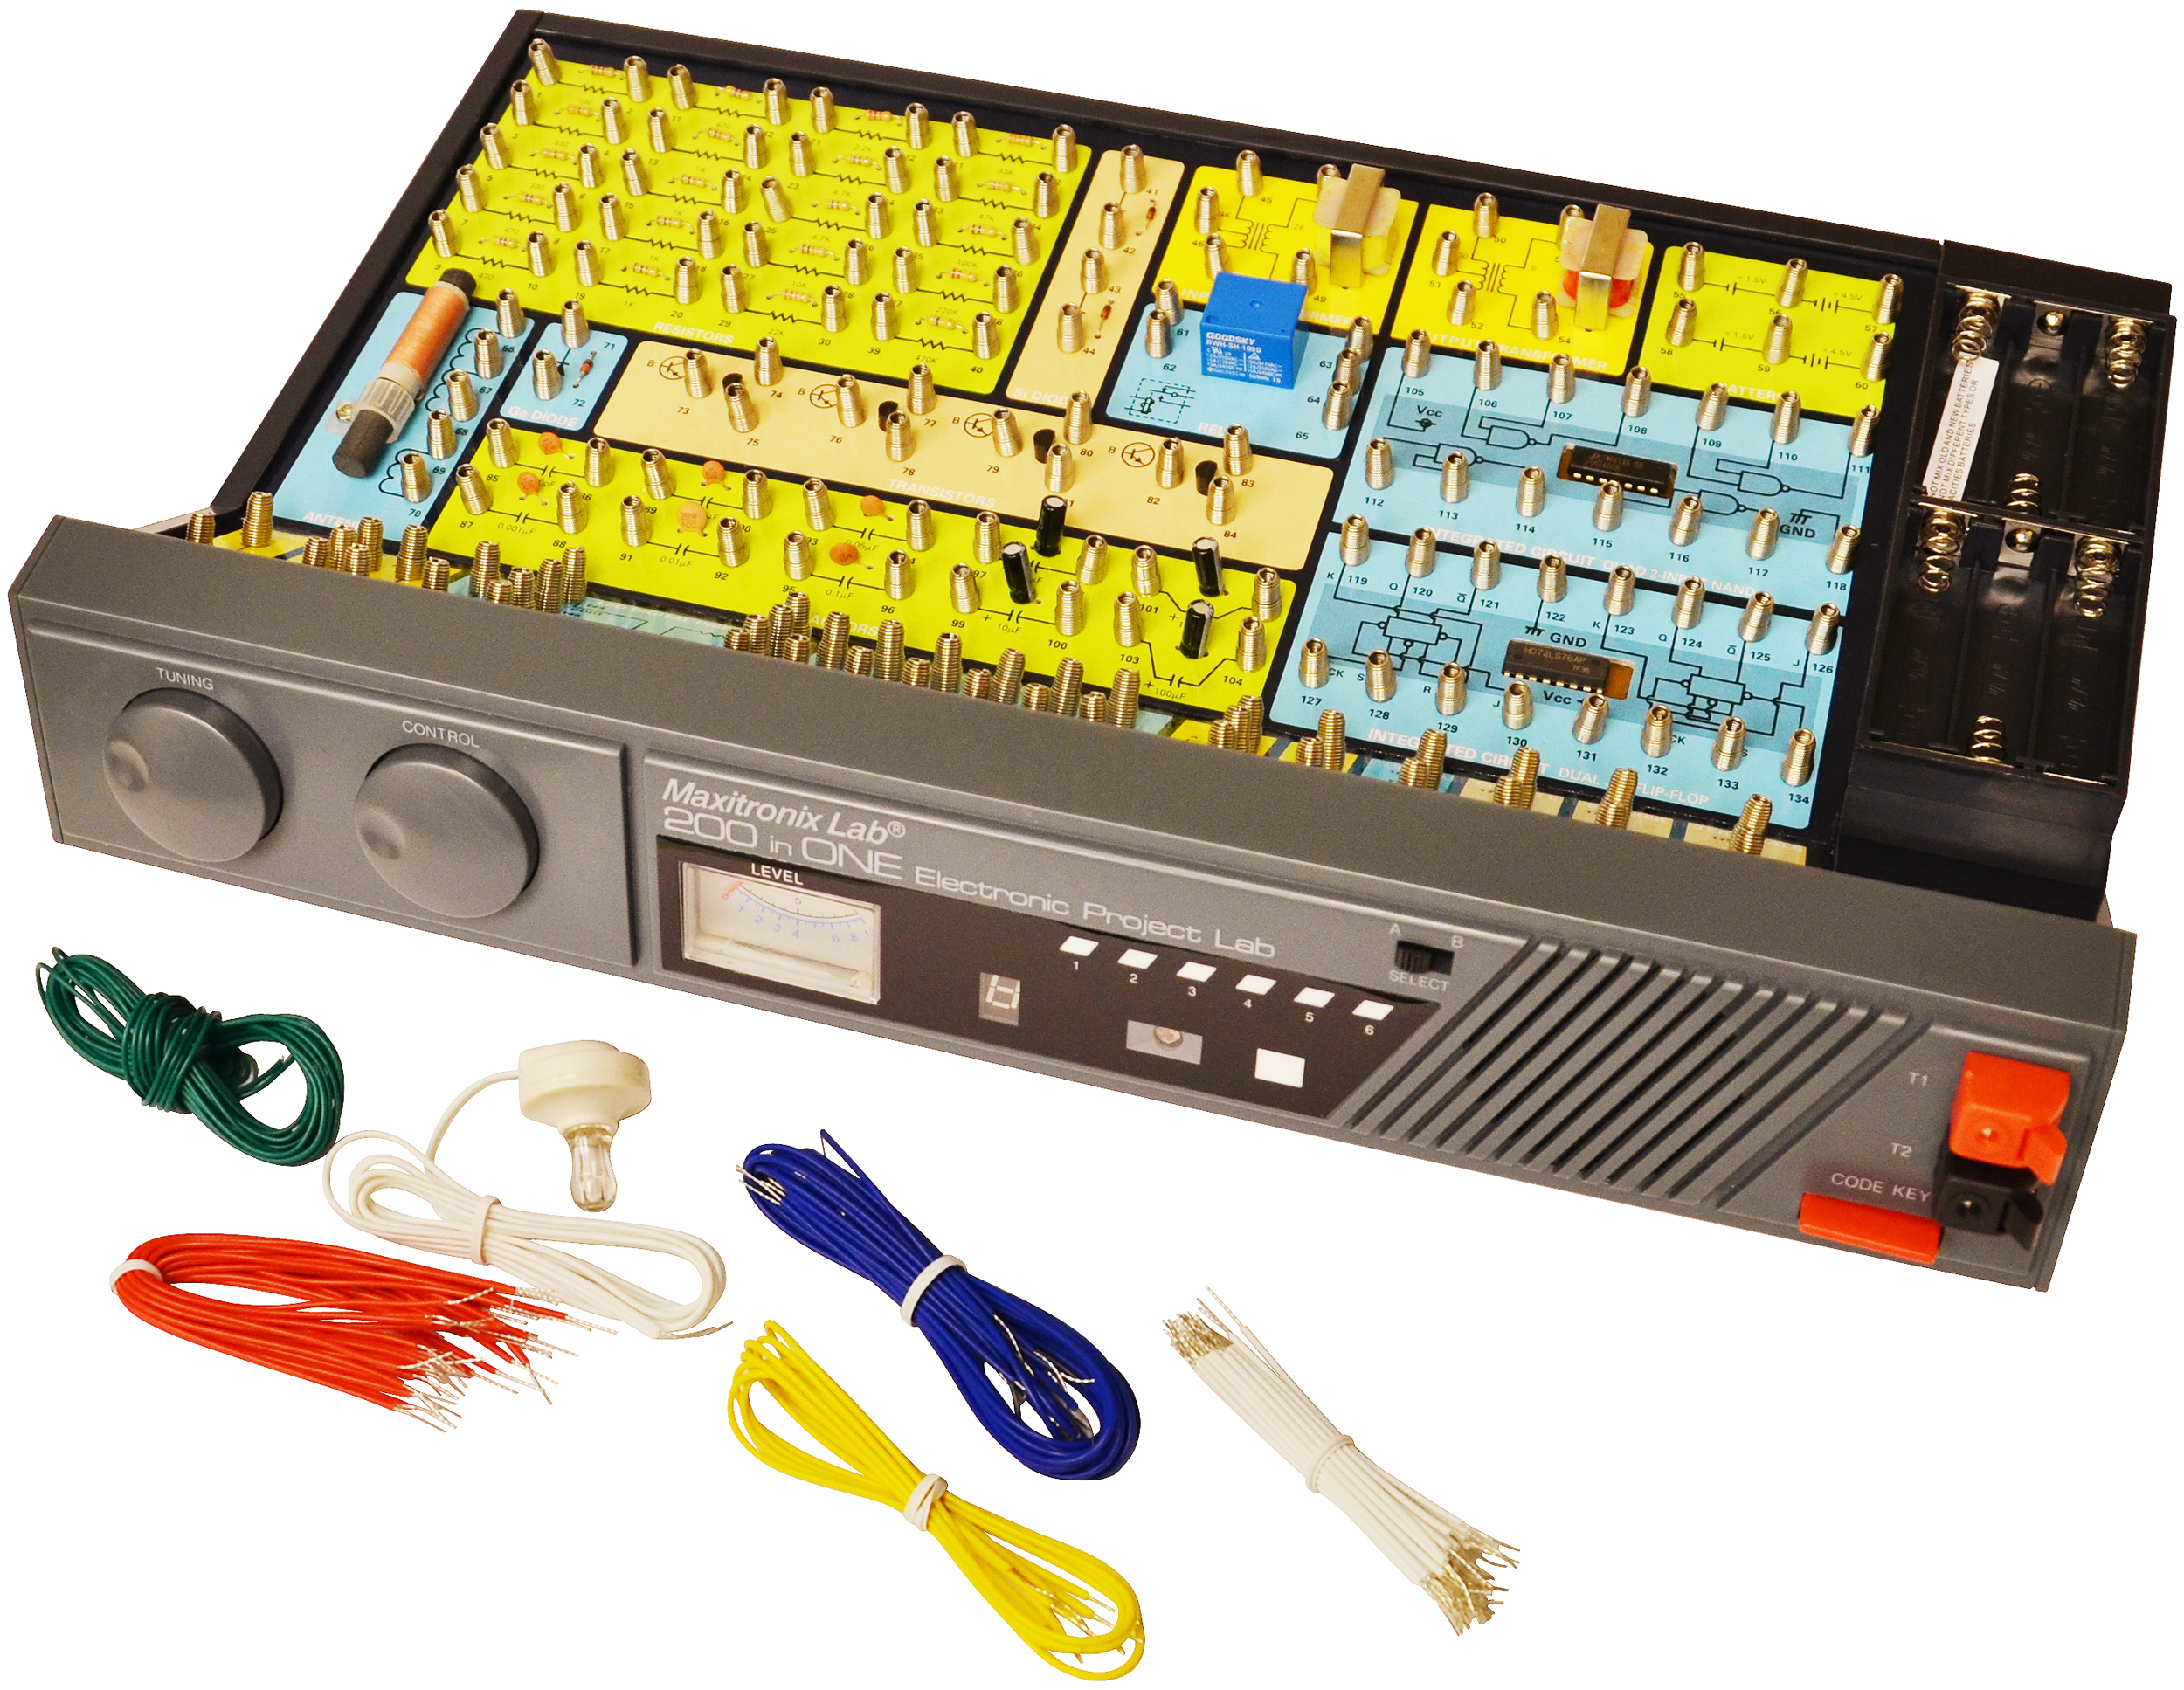 Mx-907 - 200-in-one Electronic Project Lab